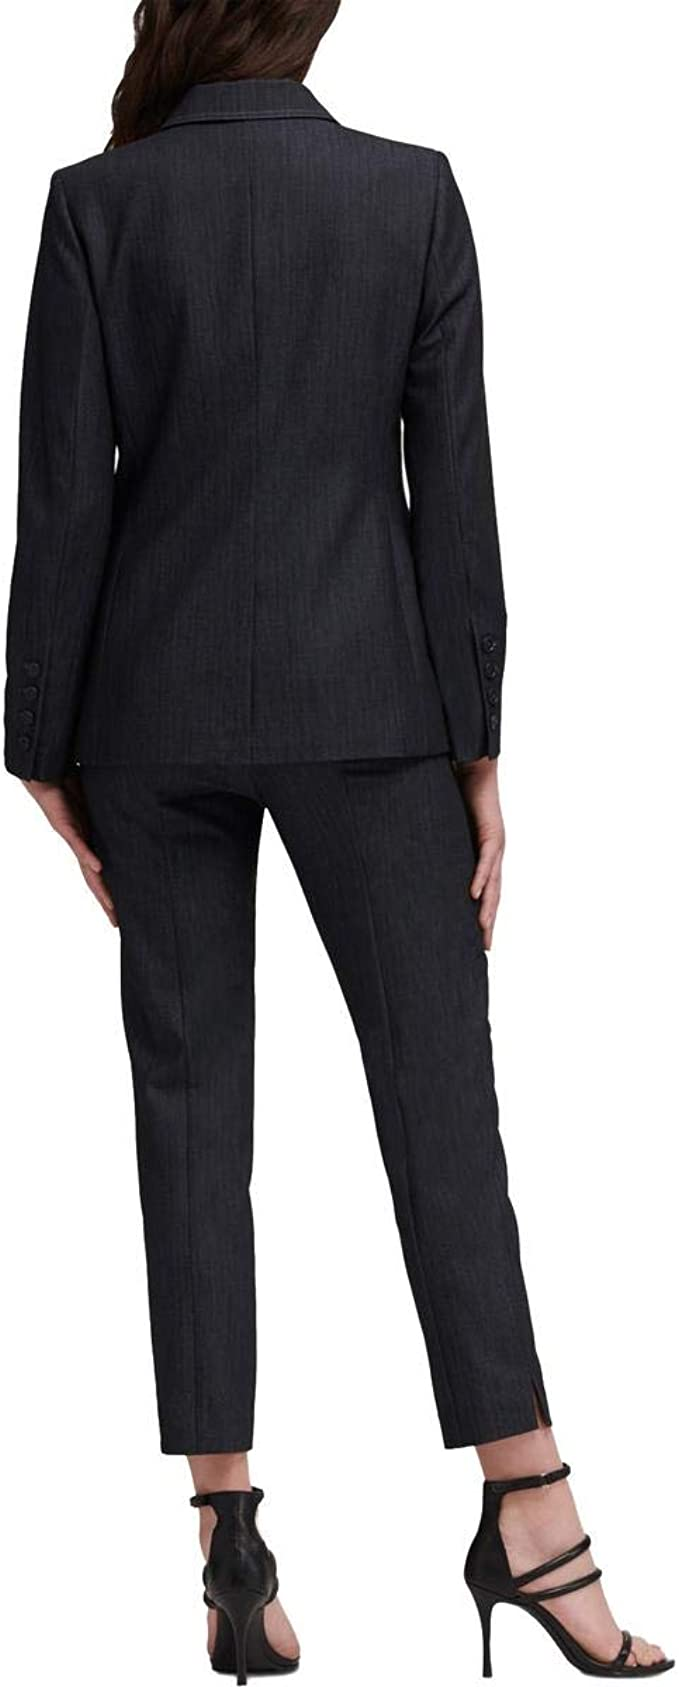 ouxiuli Womens 2 Piece Skirt Suit Set Office Slim Fit Blazer and Skirt